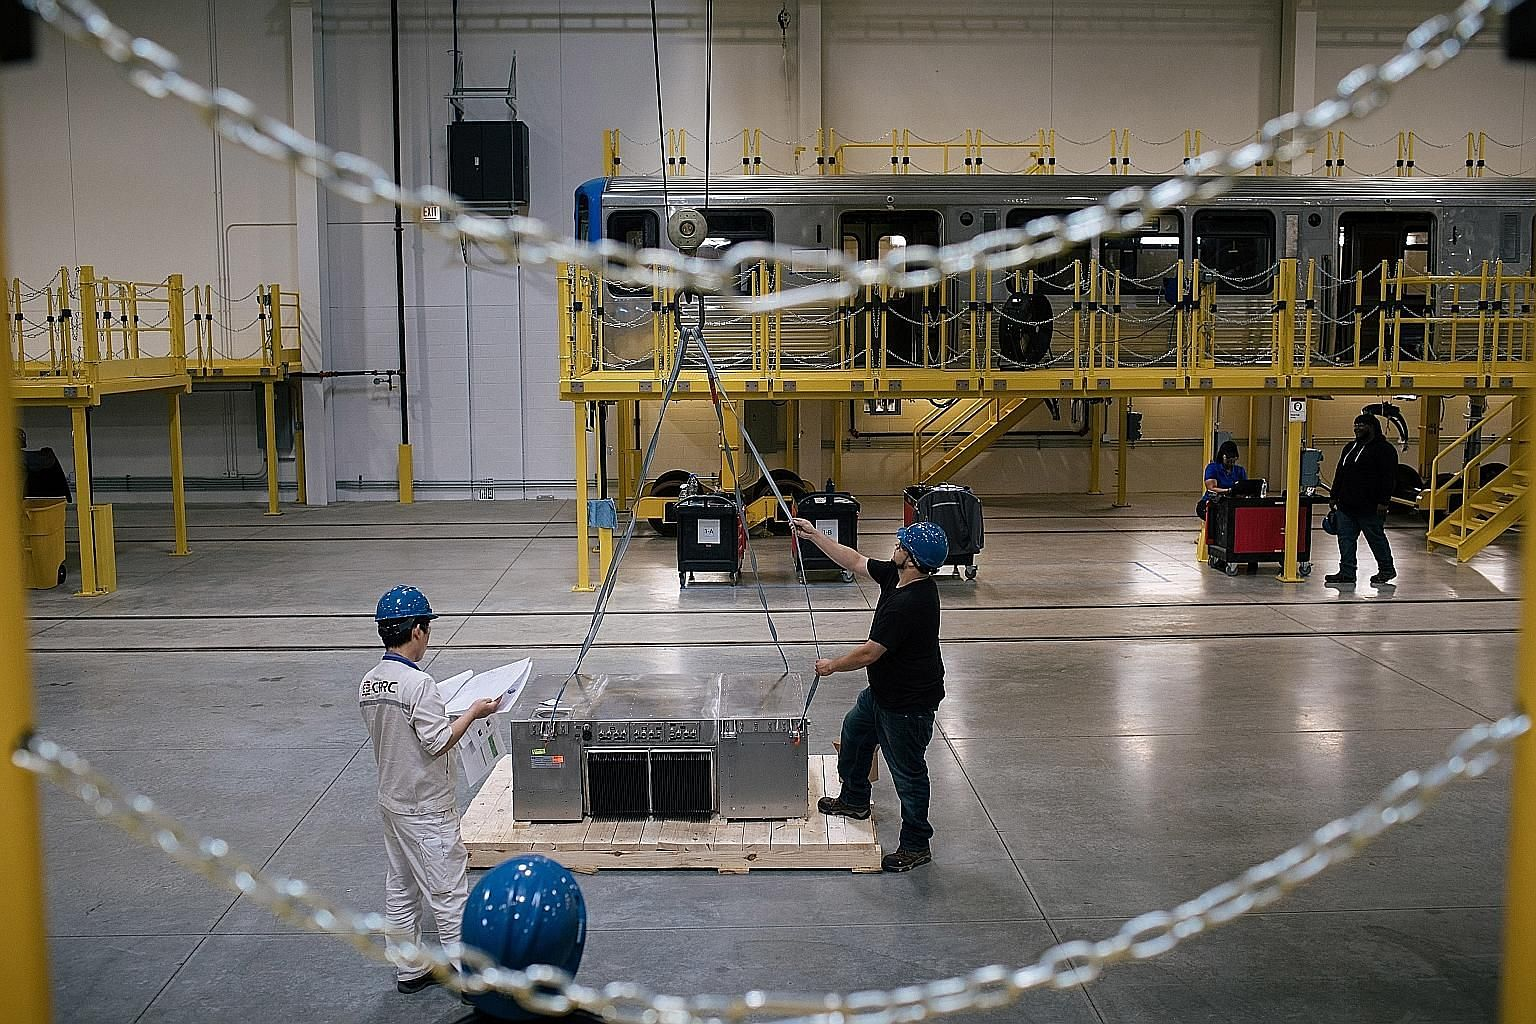 Workers moving an auxiliary power supply at CRRC Corp's Chicago plant last month. The Chinese train maker completed the US$100 million (S$137 million) facility this year in the hope of winning contracts to build subway cars and other passenger trains